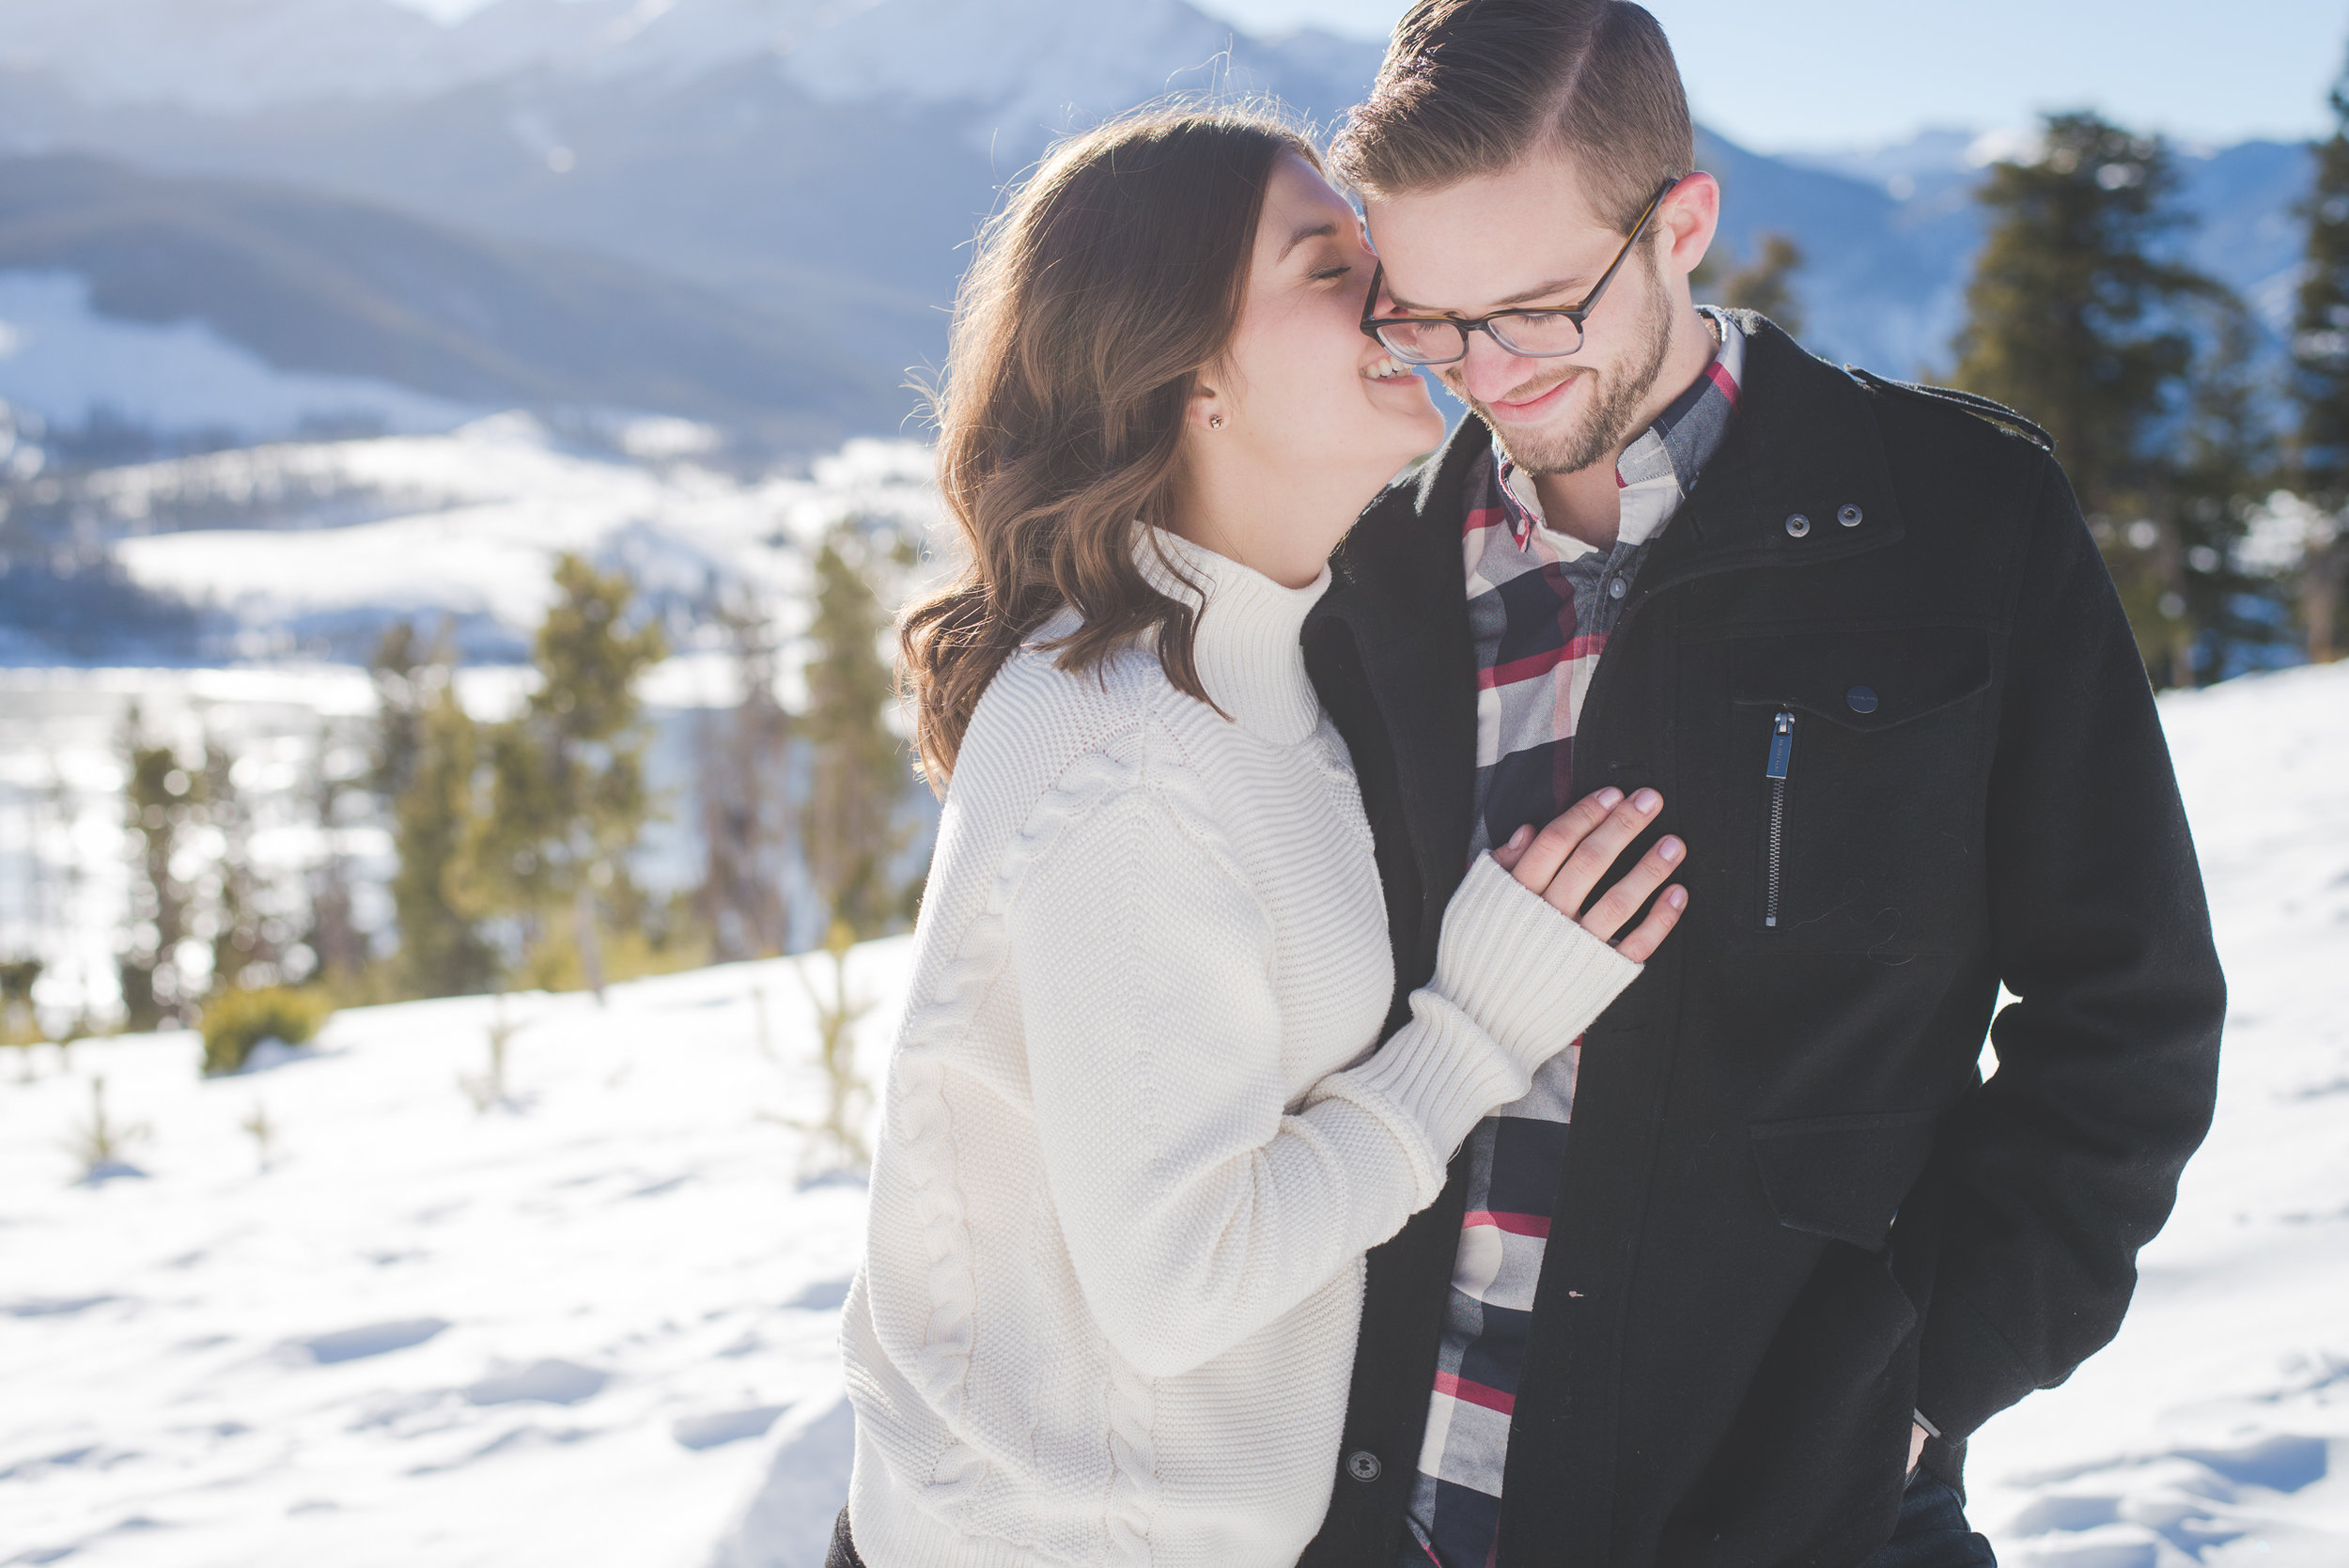 Winter engagement portraits in the Colorado Mountains | Fashion Tips for Him | Keeping Composure Photography